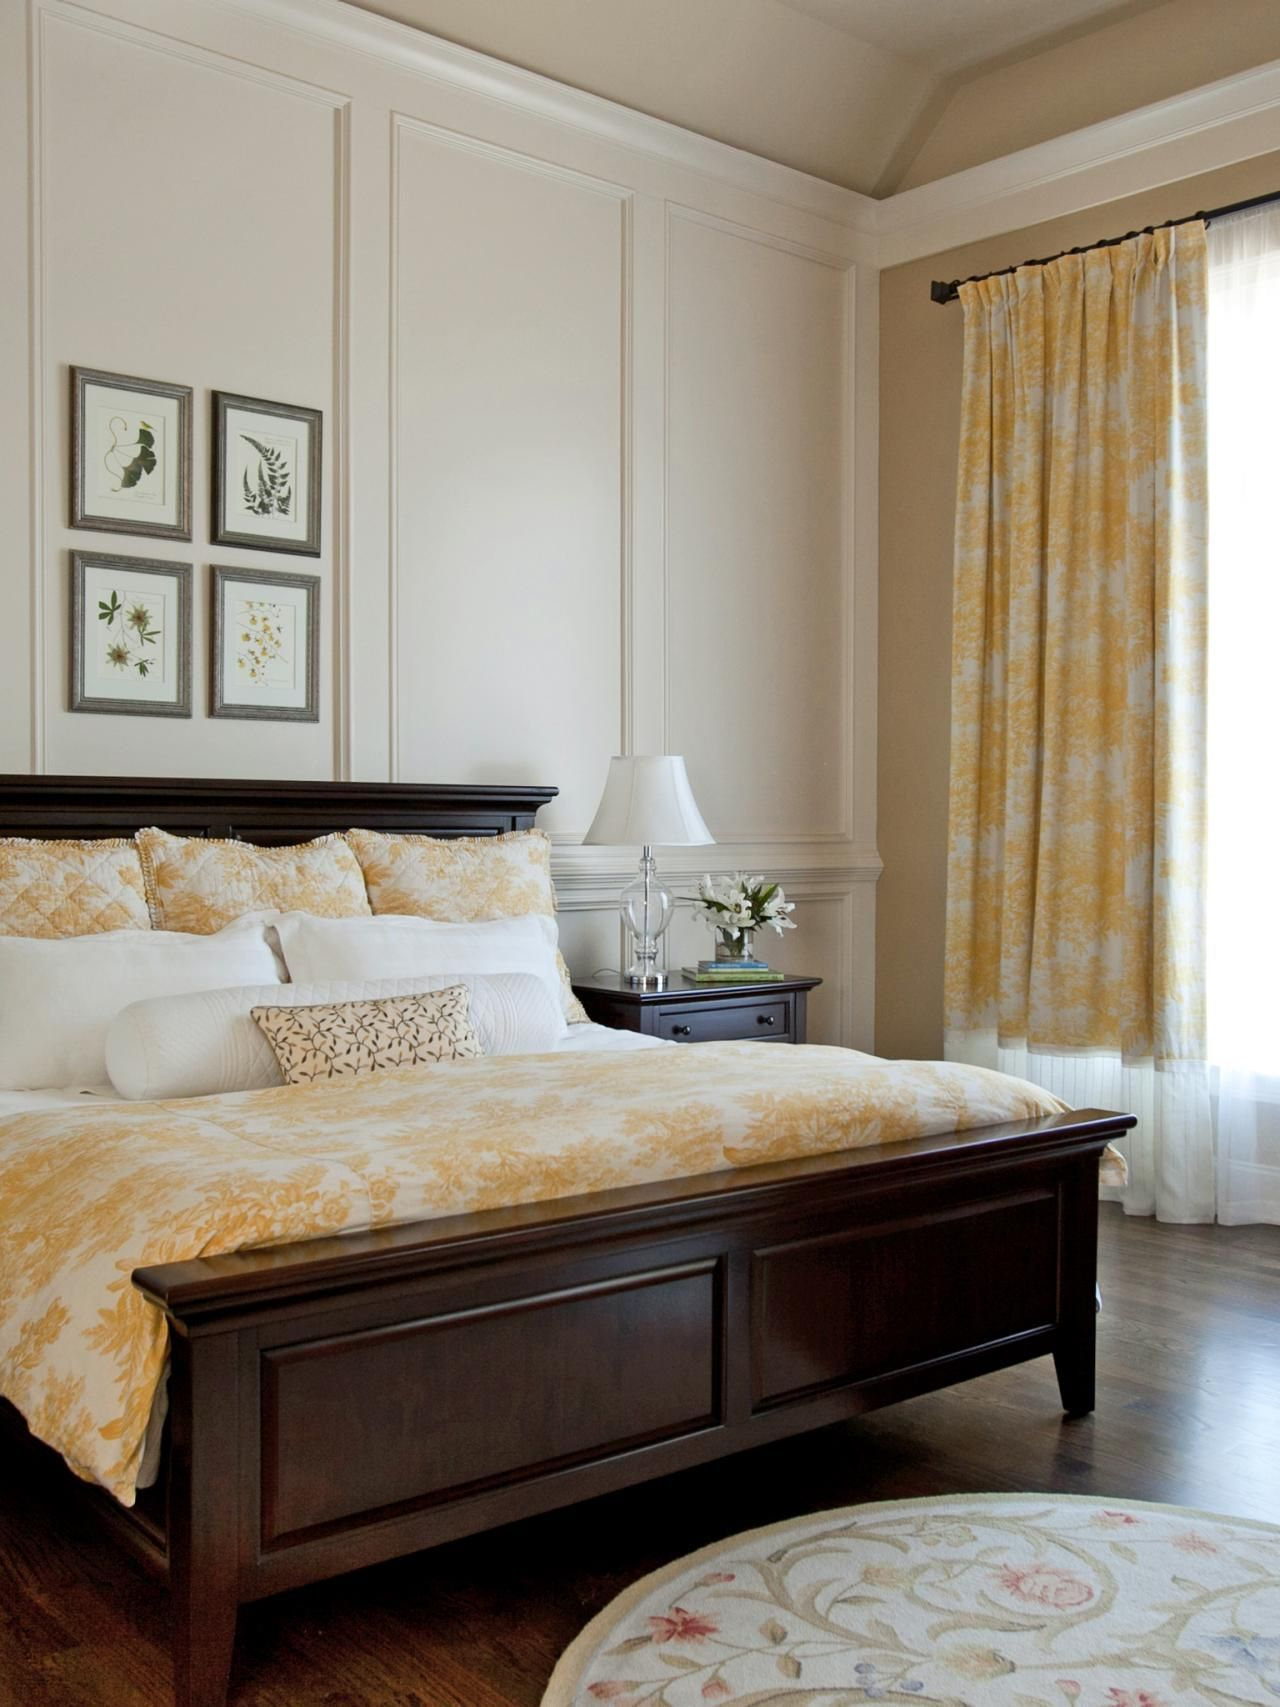 15 Cheery Yellow Bedrooms | Pinterest | Traditional bedroom, High ...